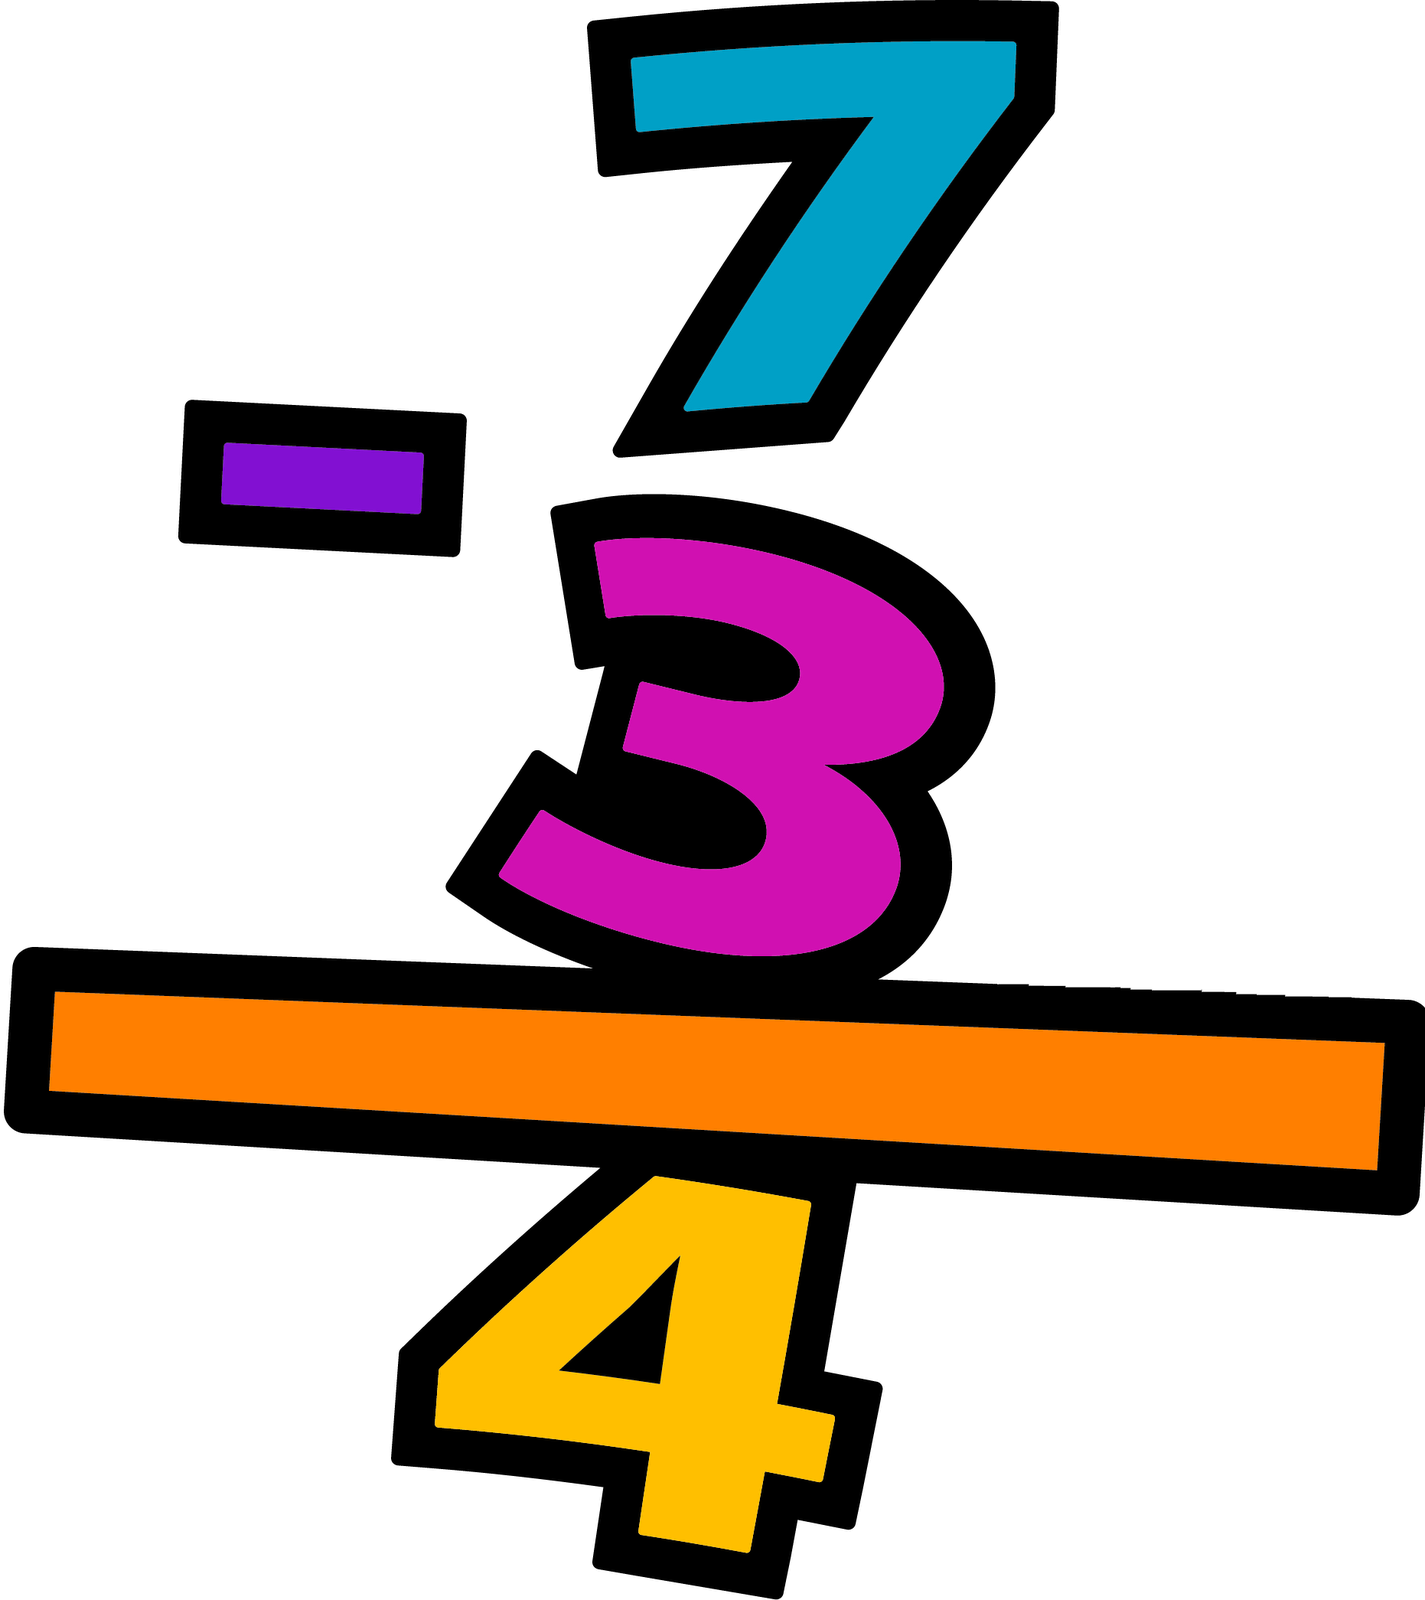 Subtraction free download best. Addition clipart addition problem